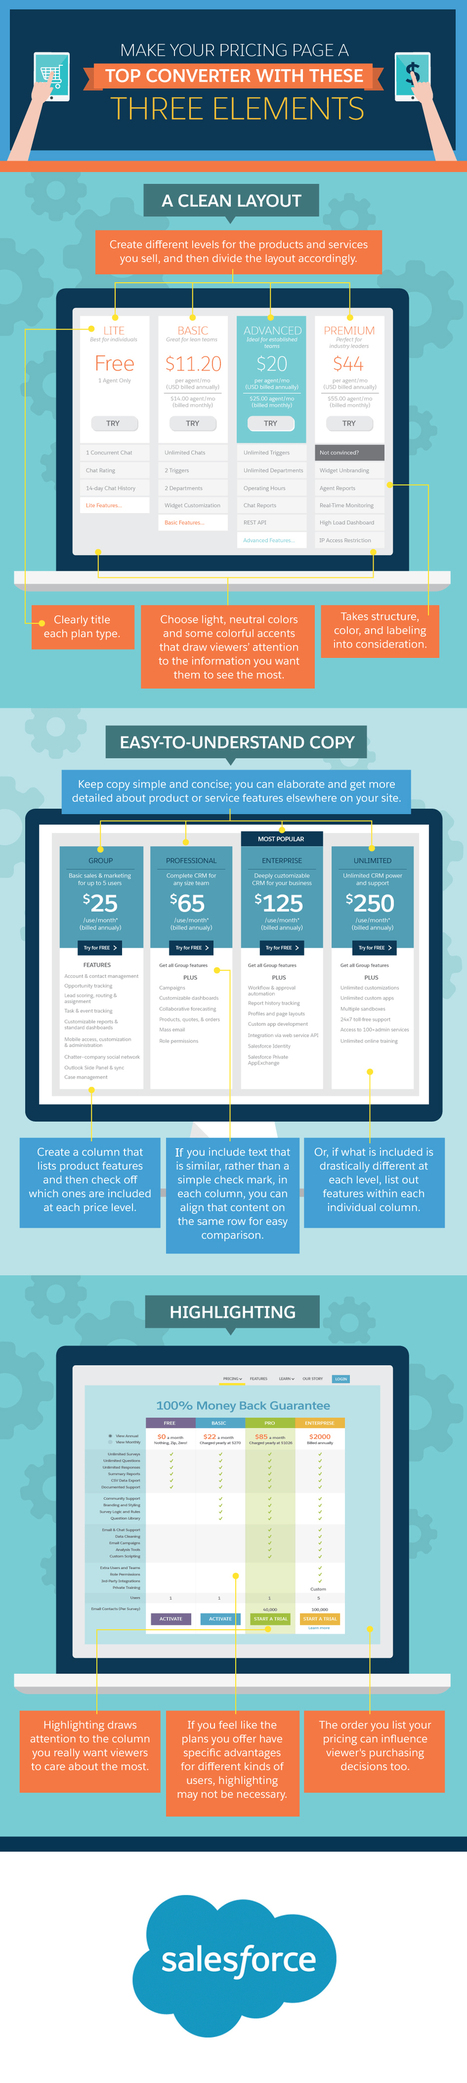 Web Design Tips: How to Display Your Prices for Better Conversions [Infographic]   Top Tech News   Scoop.it